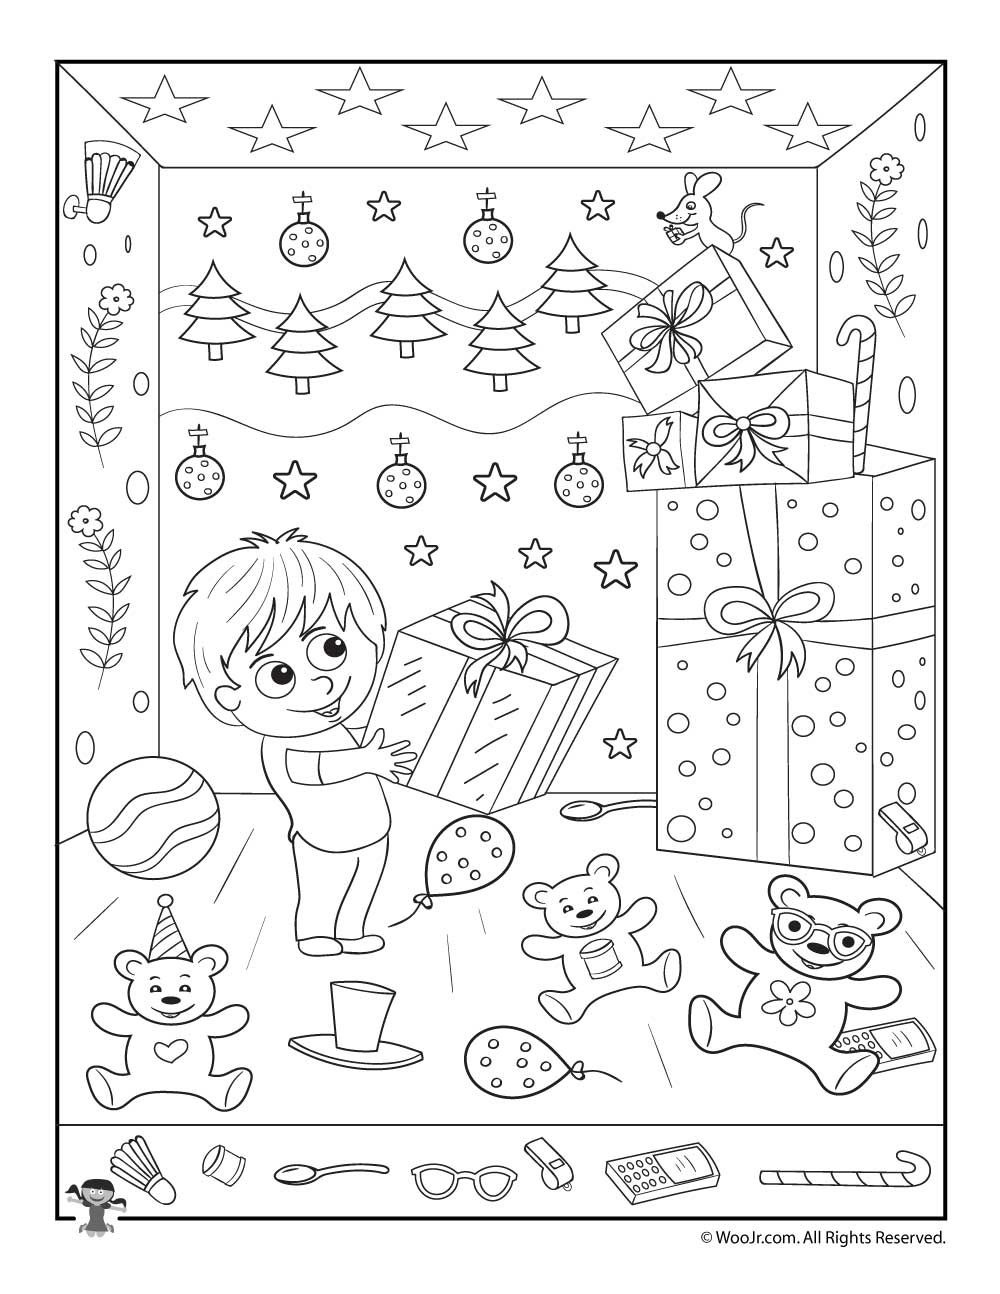 Christmas Gifts Hidden Picture Printable Activity   Merry Christmas - Free Printable Christmas Hidden Picture Games